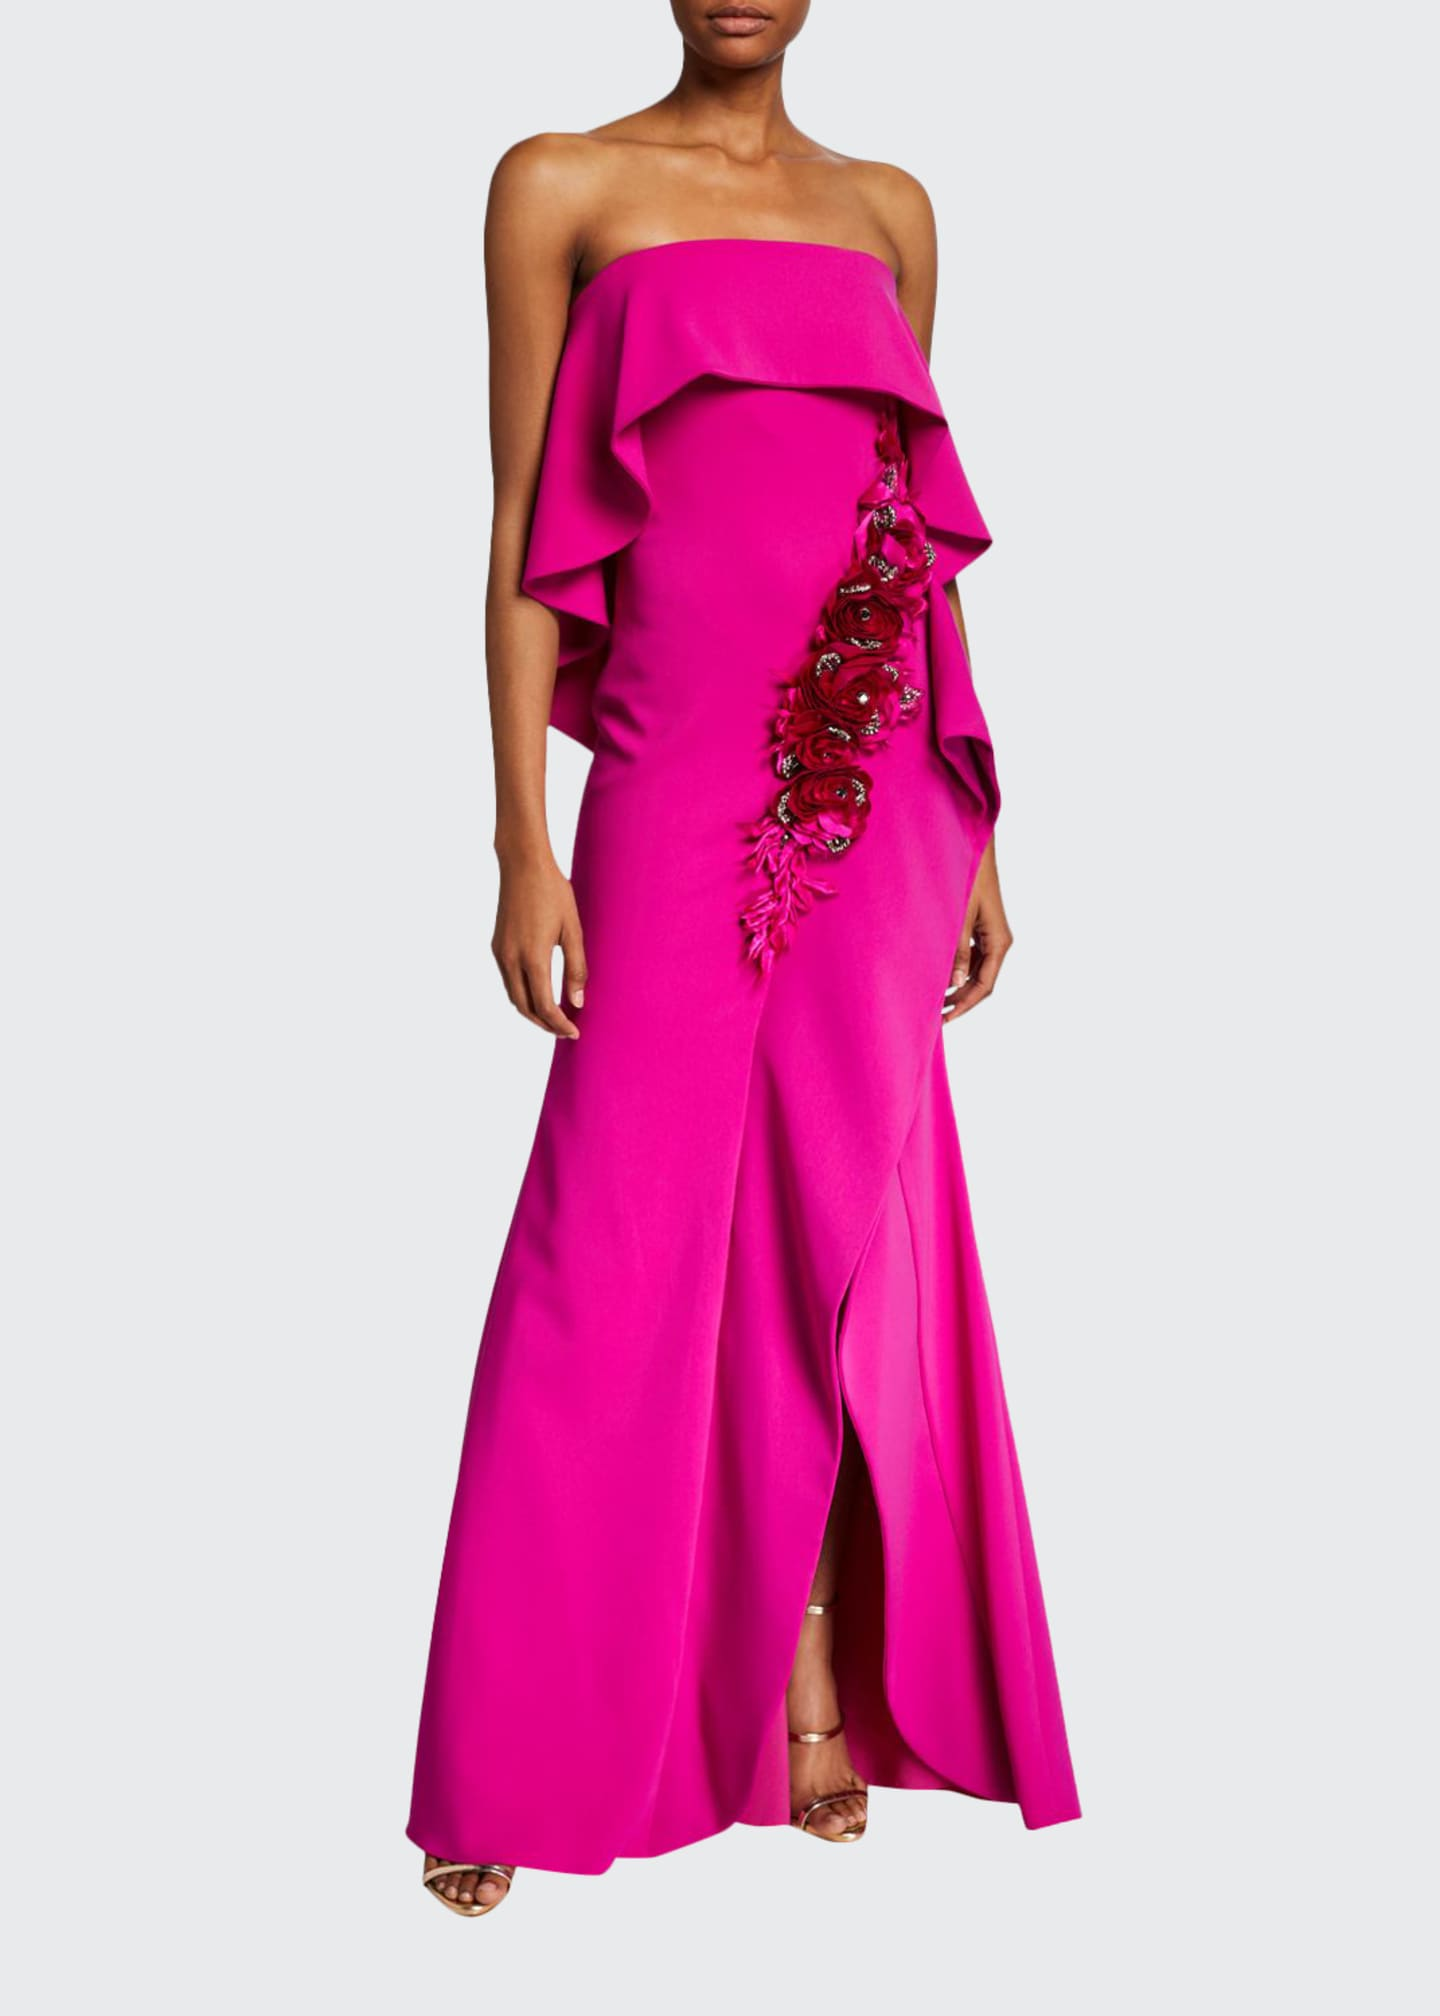 Badgley Mischka Couture Embroidered Rosette Strapless Popover